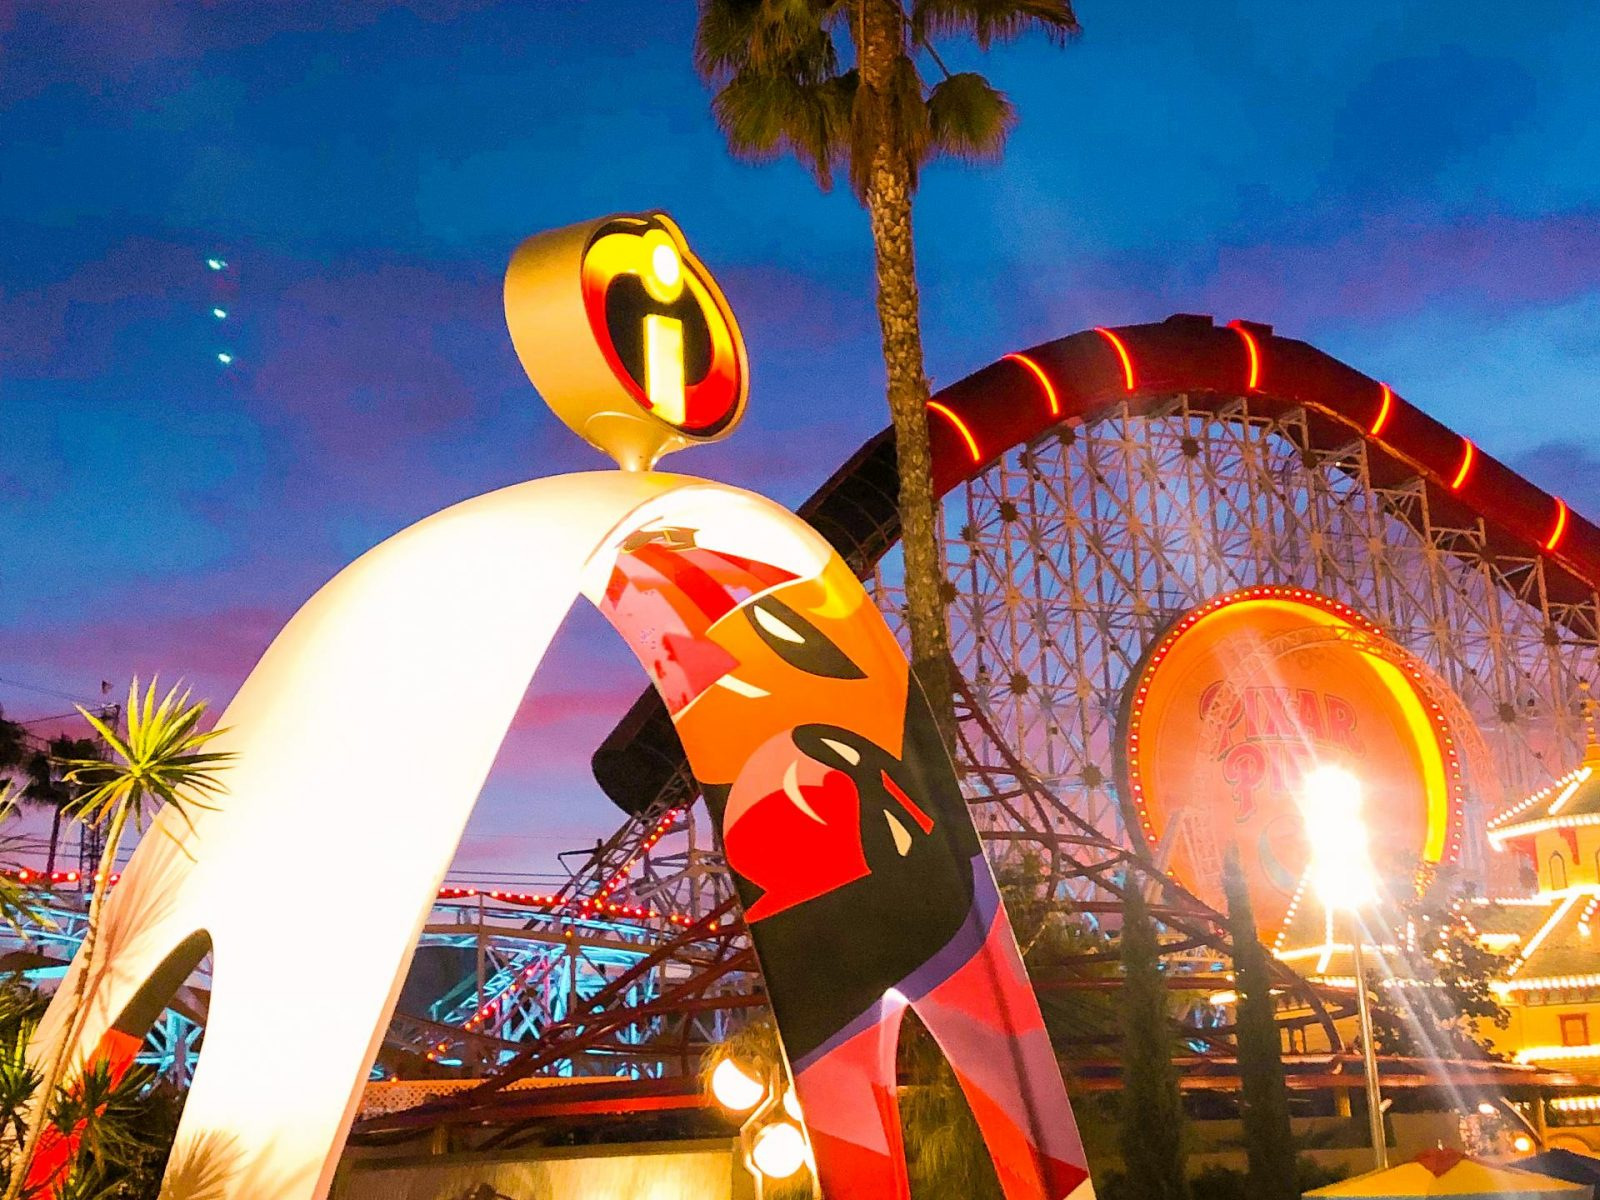 10 Must Do's at Disneyland for First-Timers - Incredicoaster